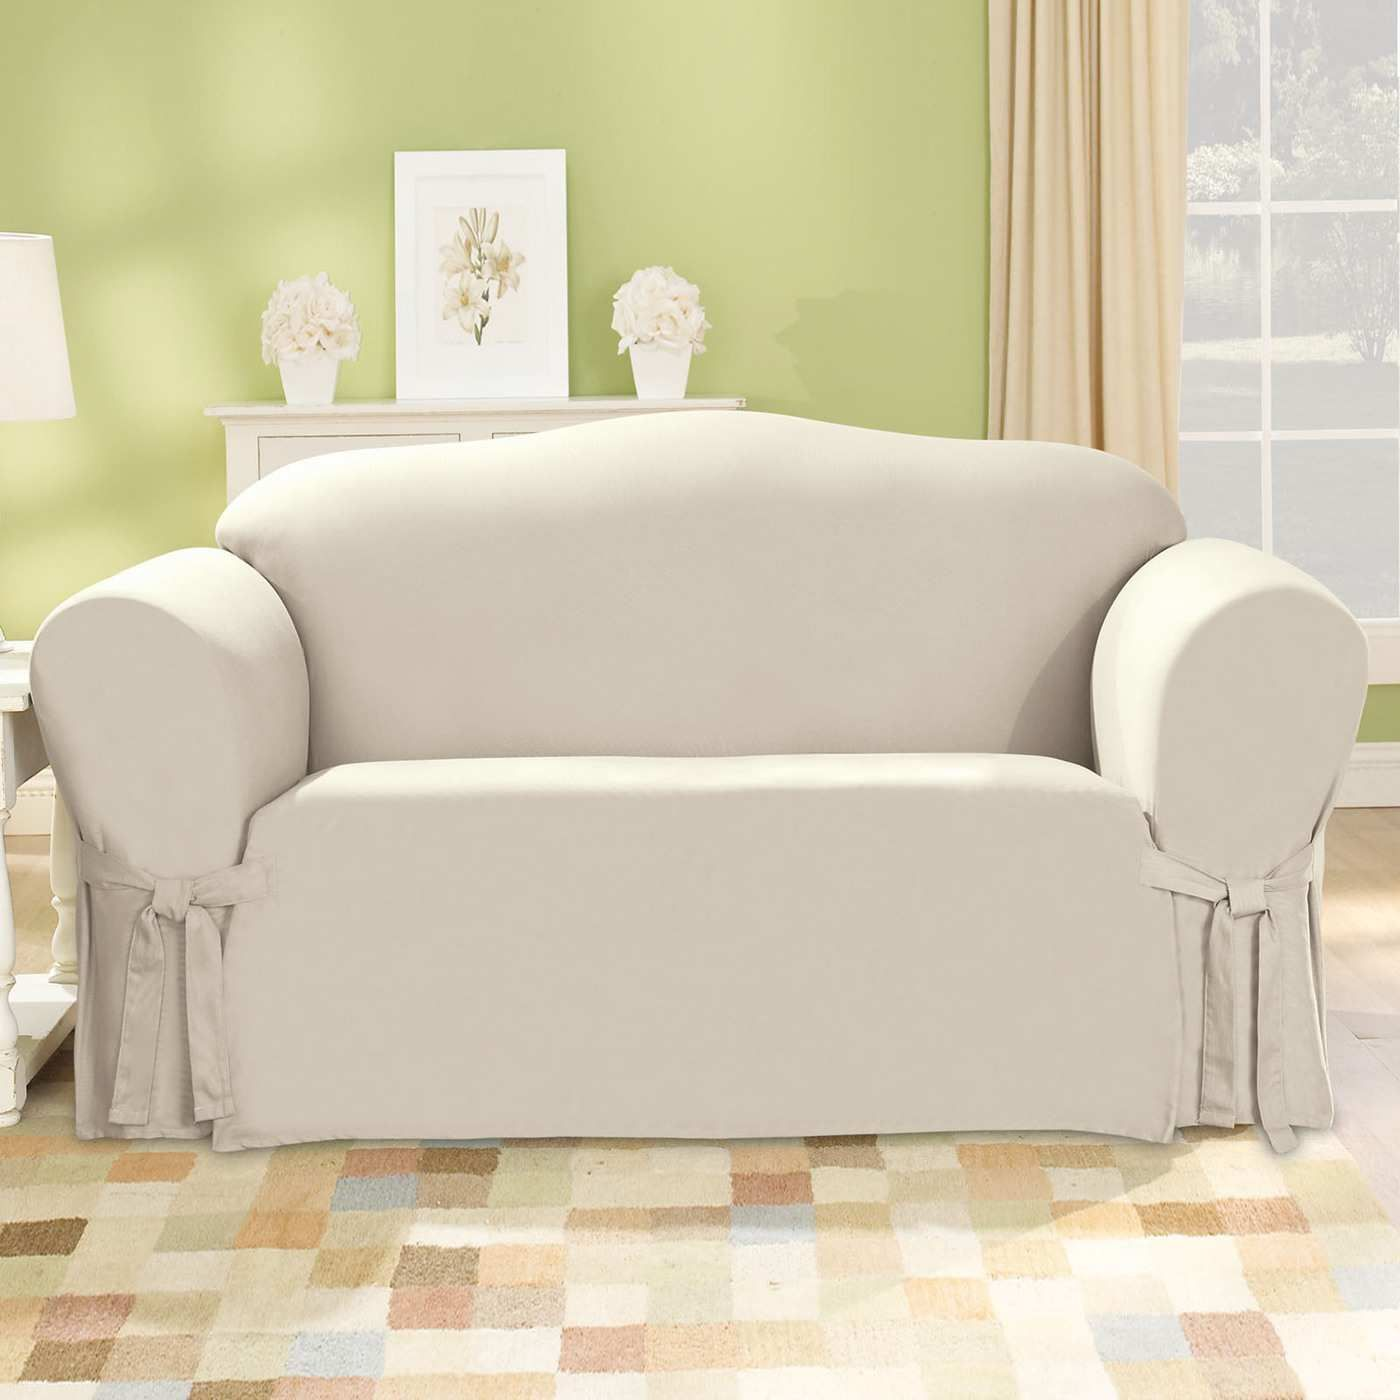 10 Sears Sofa Covers Stylish As Well As Attractive Sofa Covers